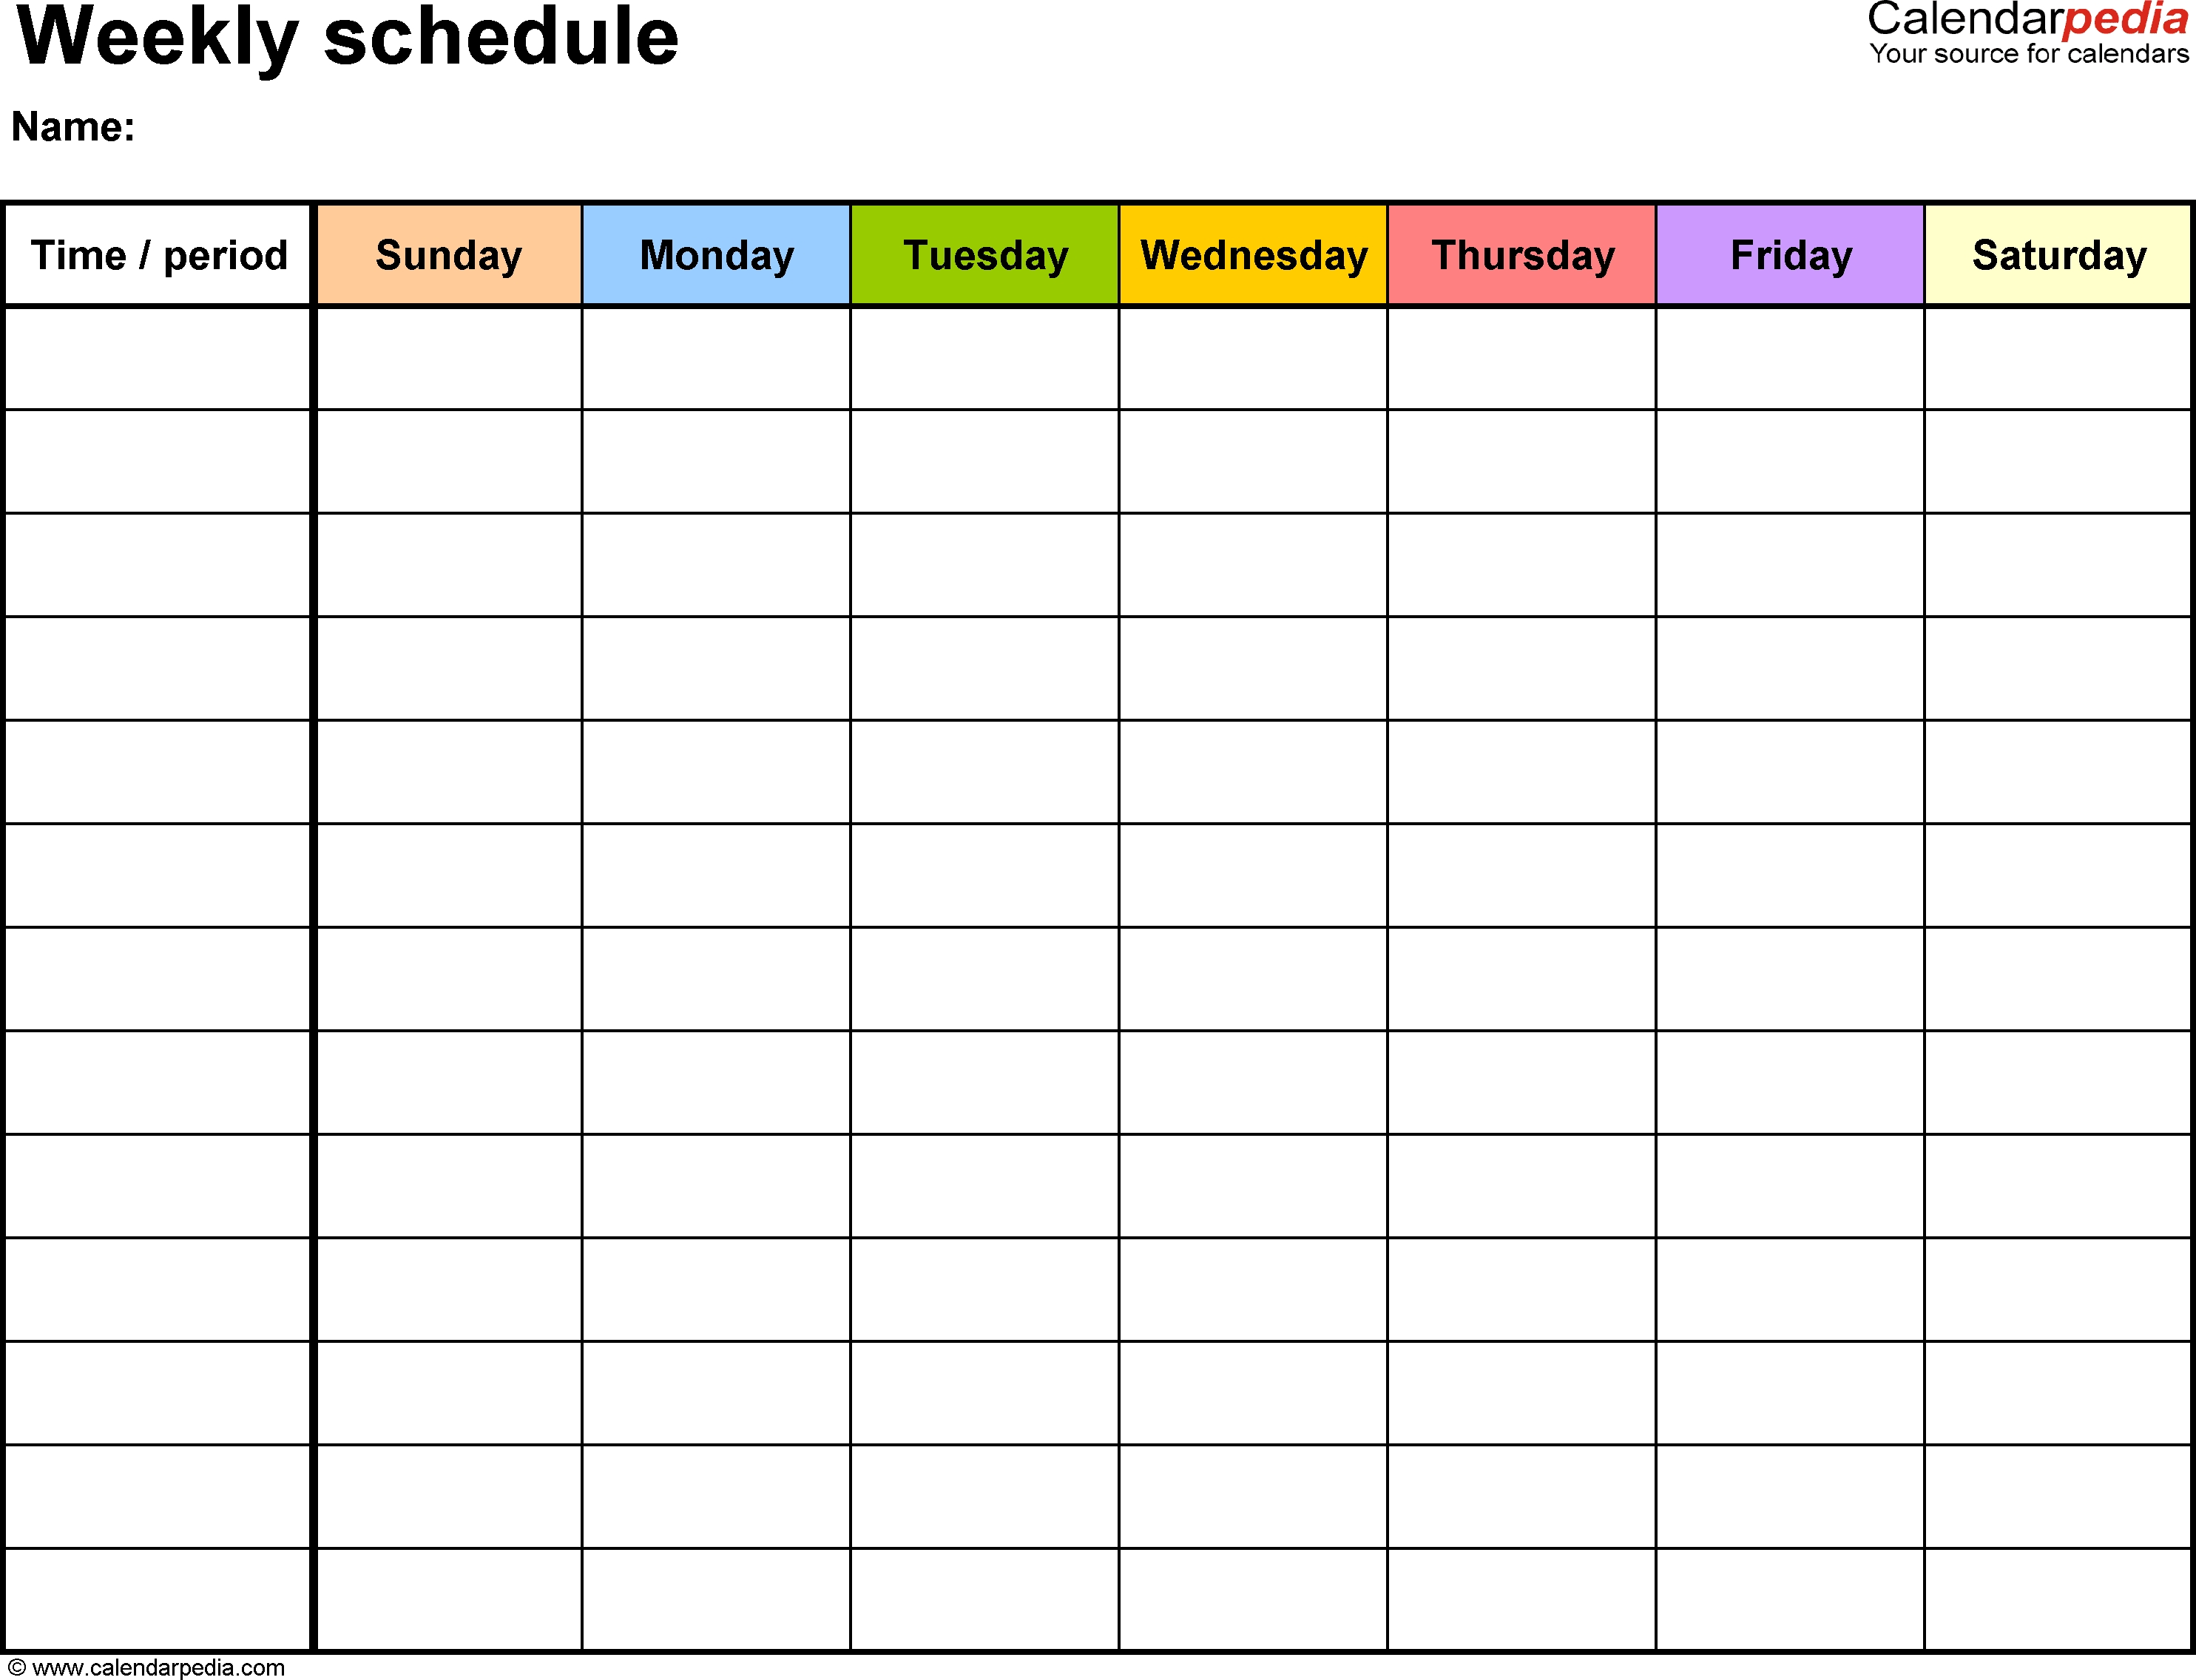 Free Weekly Schedule Templates For Word - 18 Templates inside Monday Through Friday Calendar With Times